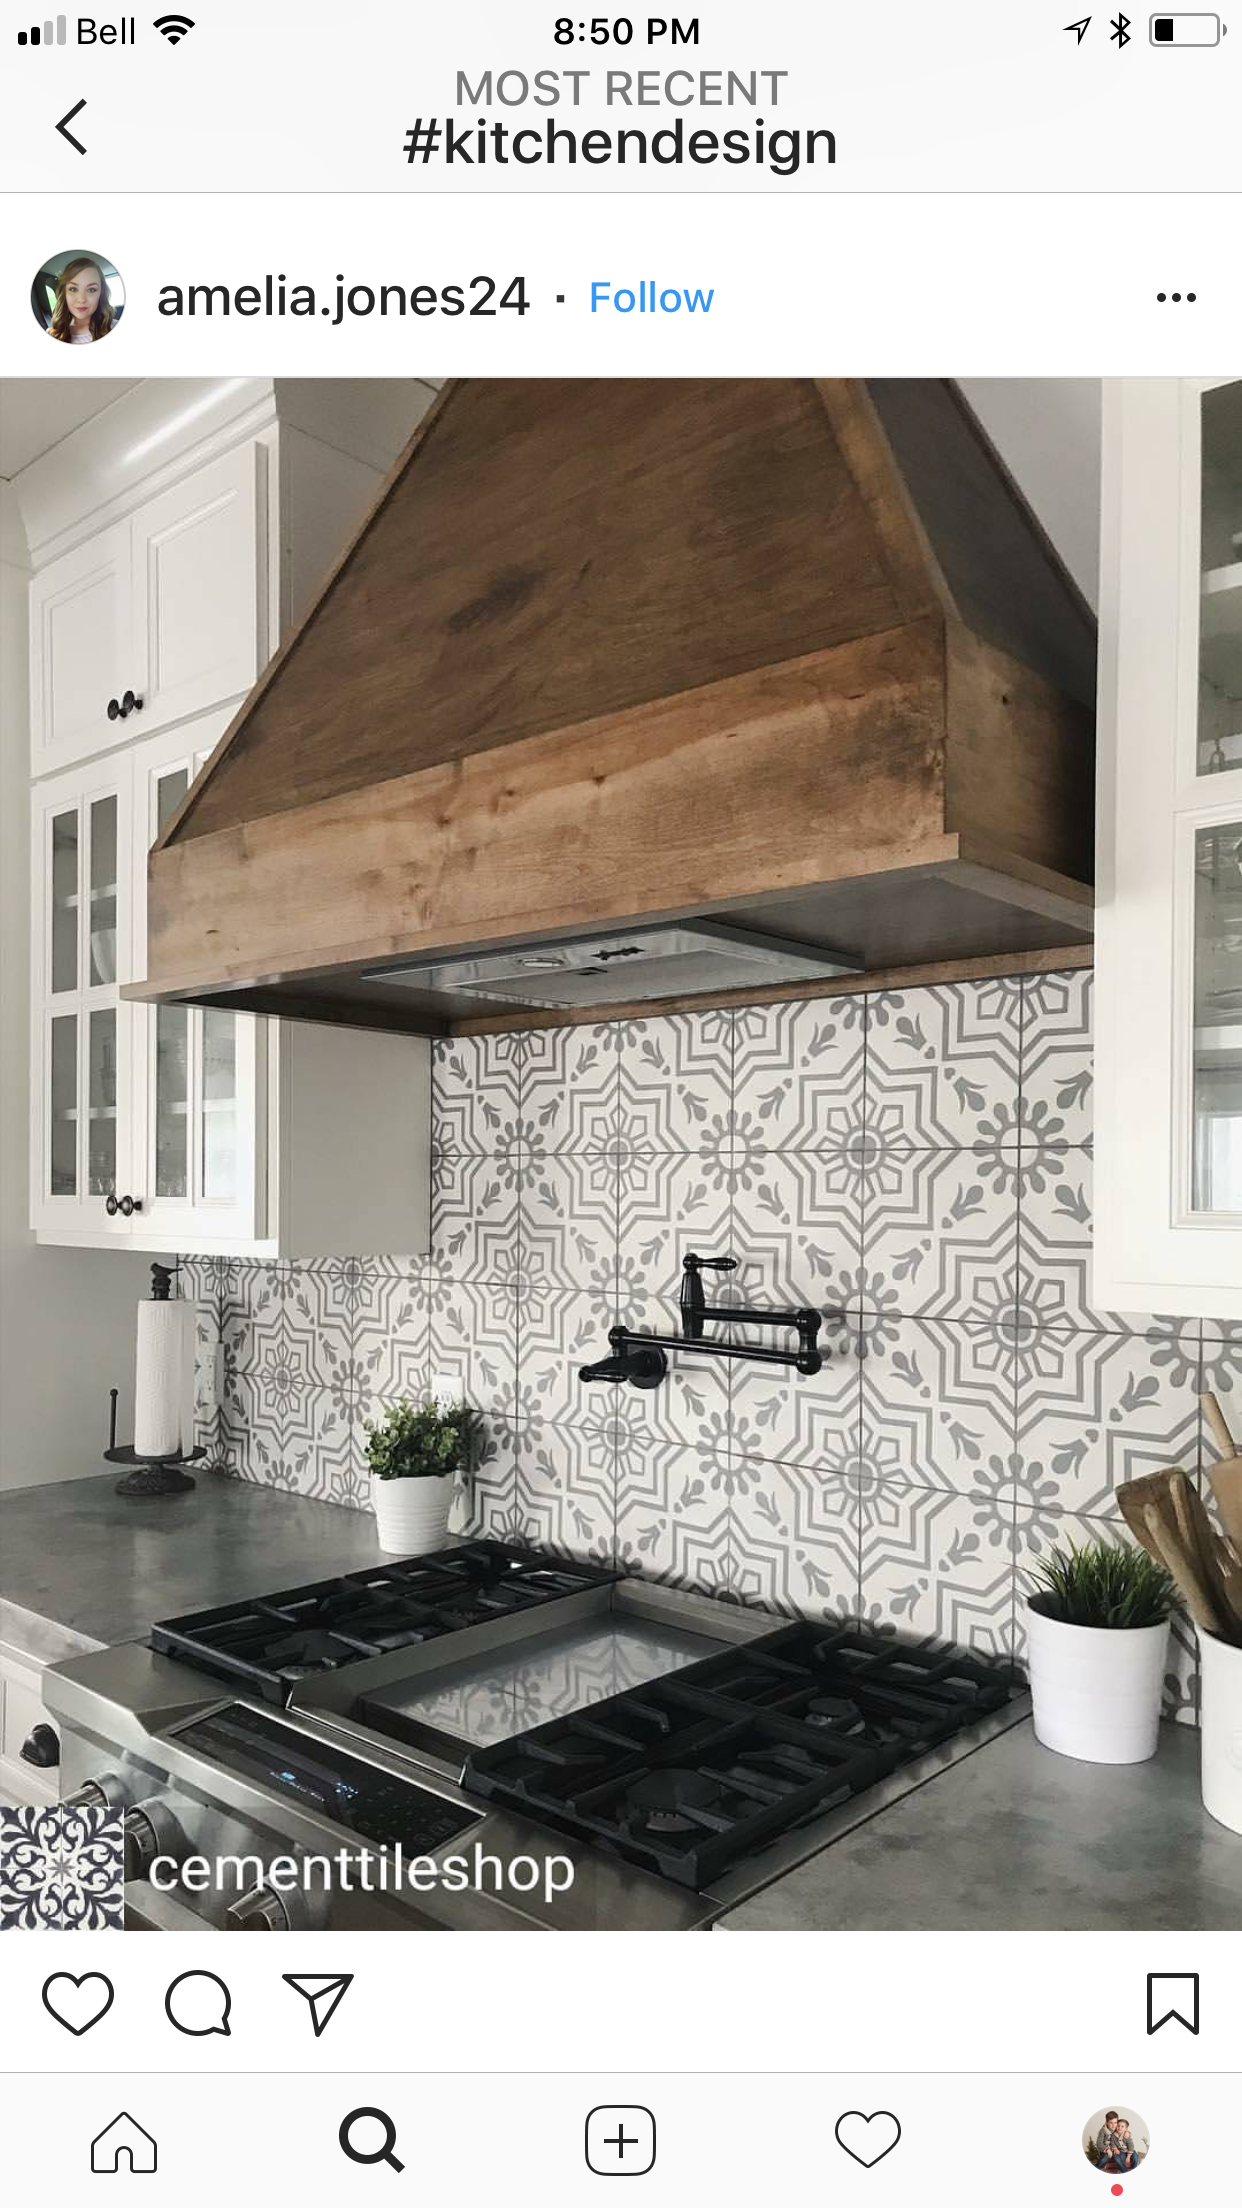 Replace The Microwave Space With Lovely Vent Hood Farmhouse Kitchen Backsplash Kitchen Remodel Modern Farmhouse Kitchens